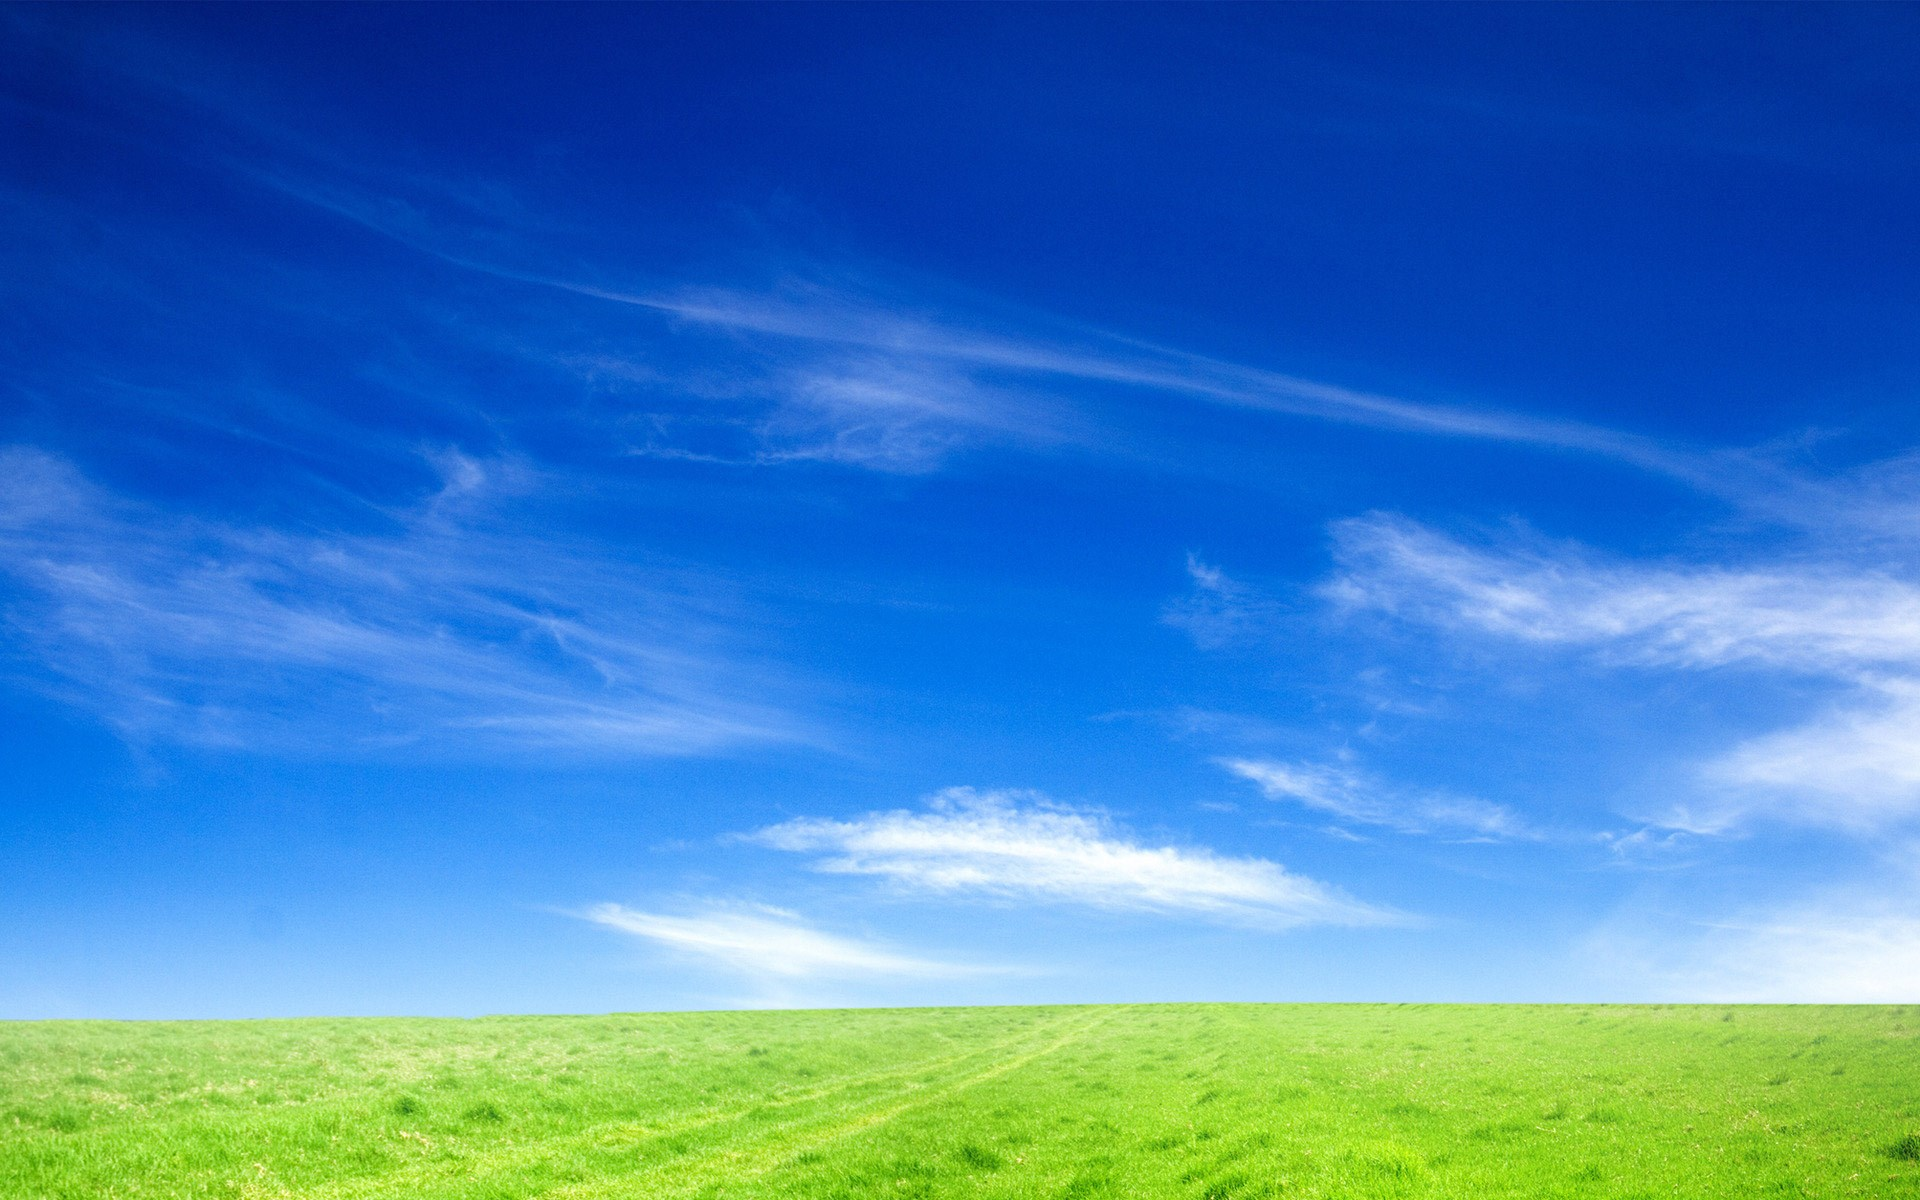 blue sky and green